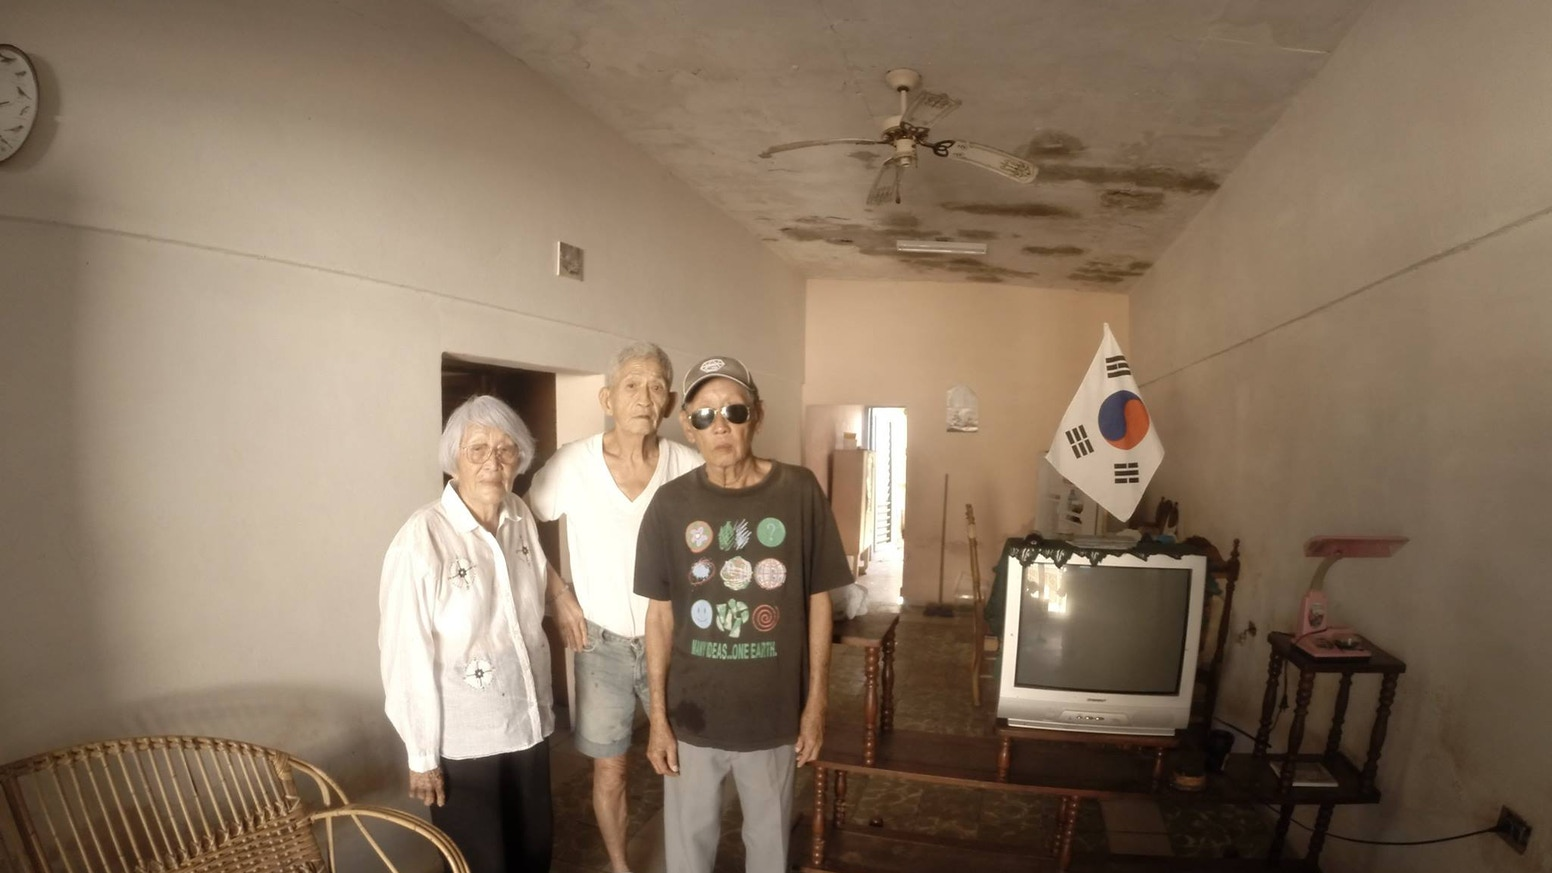 I am making a documentary on this Korean family in Cuba who helped bring Korea's independence and the Cuban revolution.